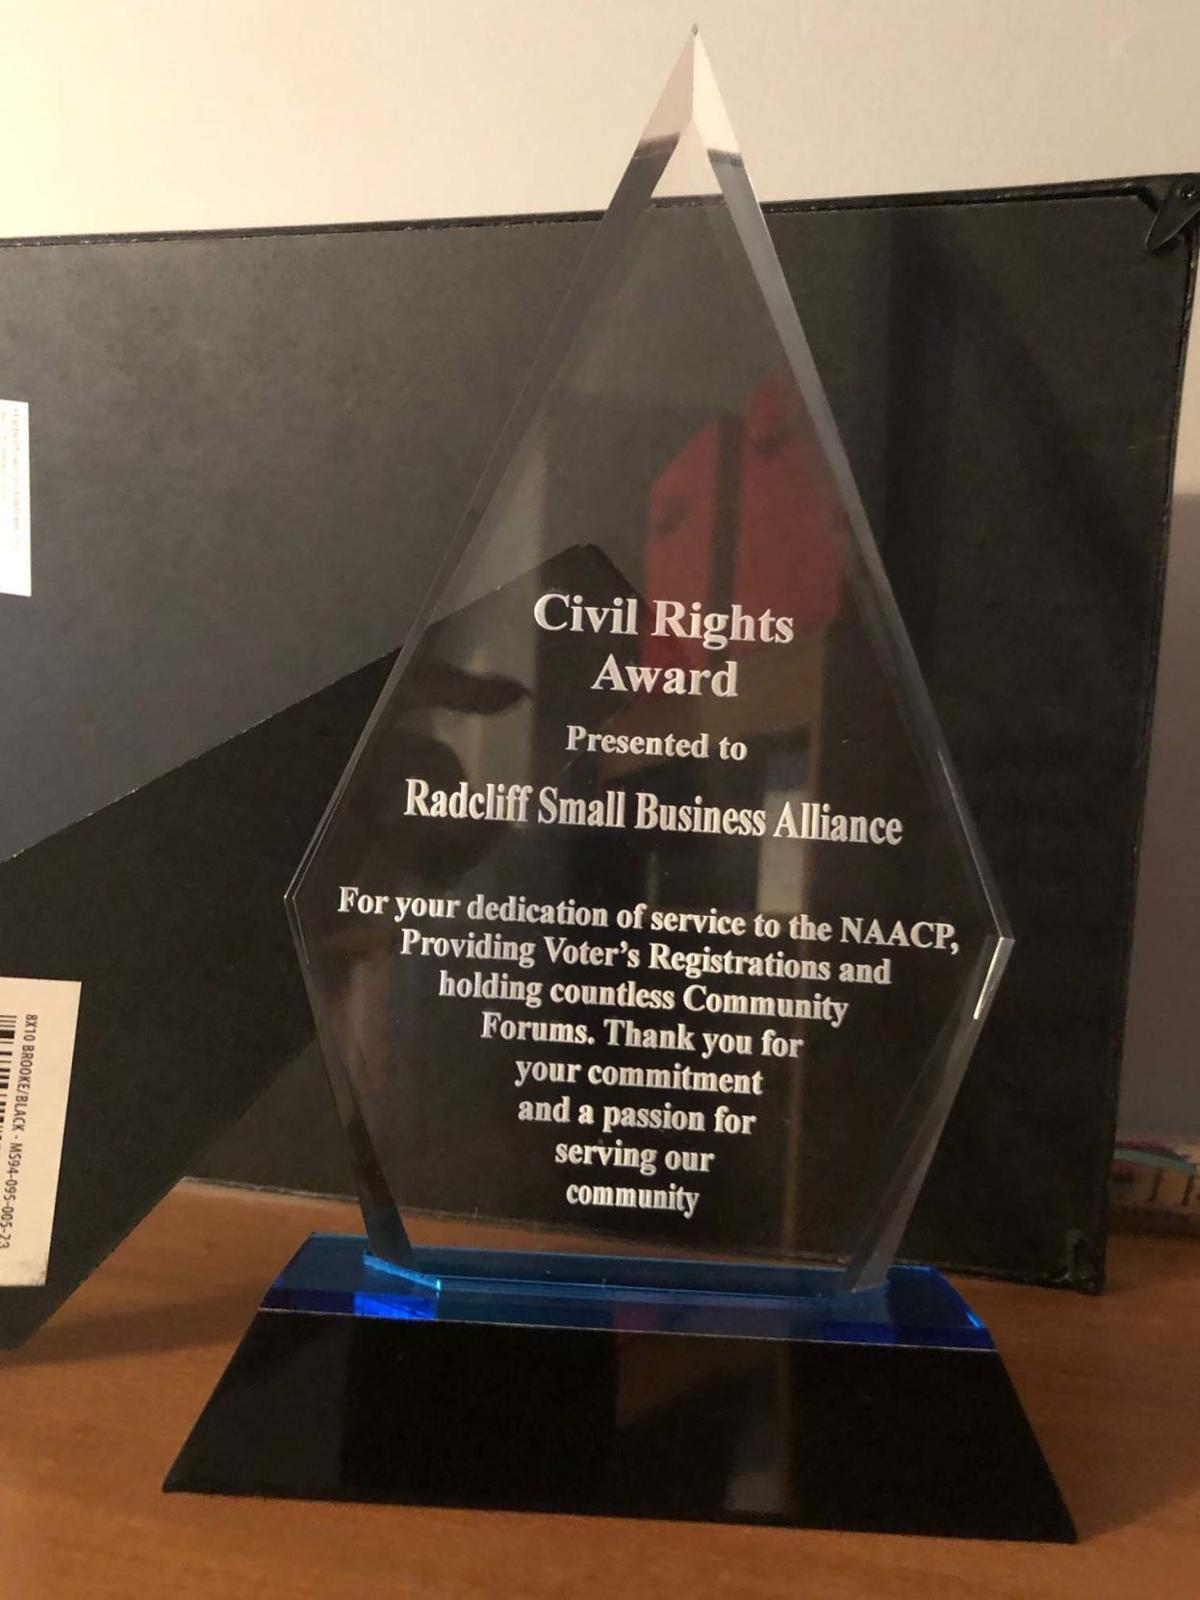 Radcliff Small Business Alliance receives civil rights award